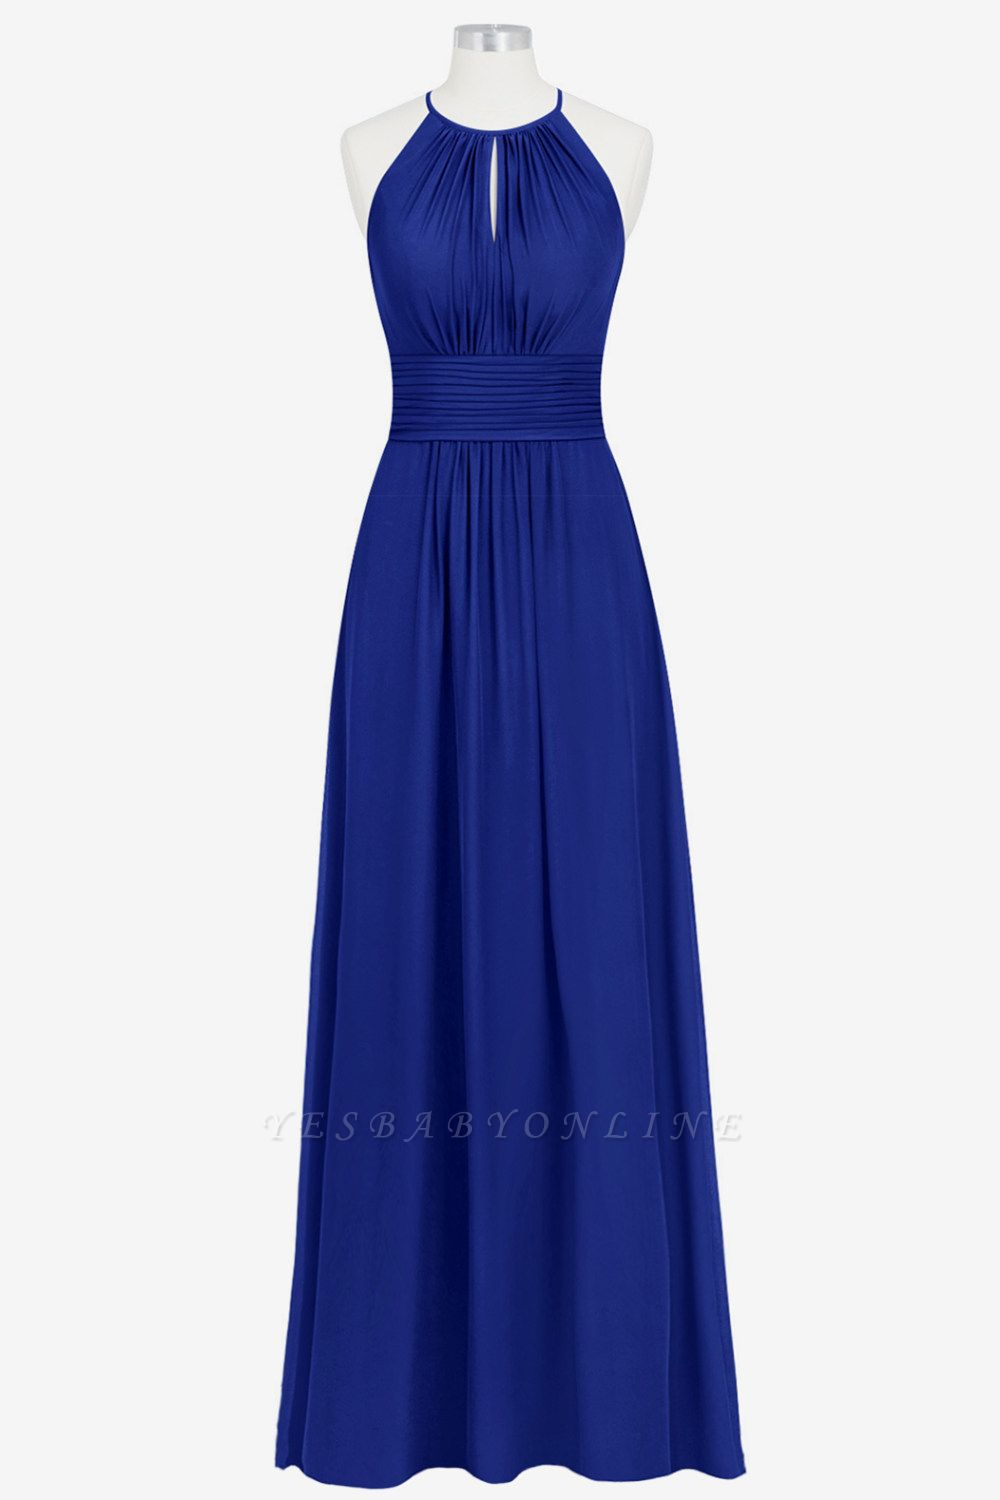 A Line Chiffon Round Neck Floor Length Bridesmaid Dresses With Ruffles